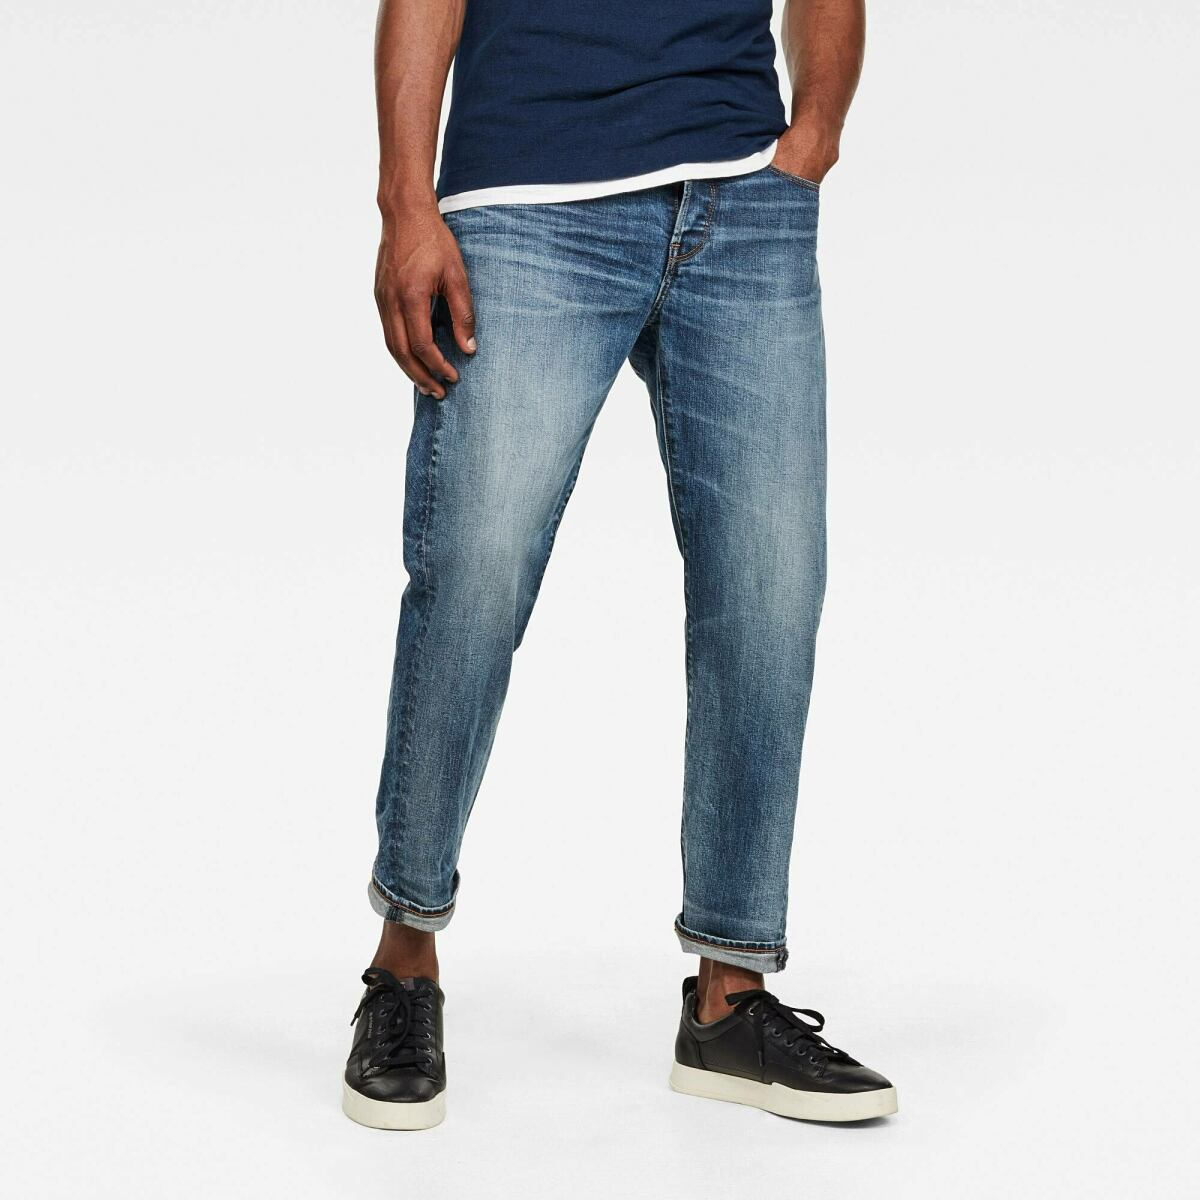 Medium blue Man Jeans 5650 3D Relaxed Tapered C Jeans G-Star MEN